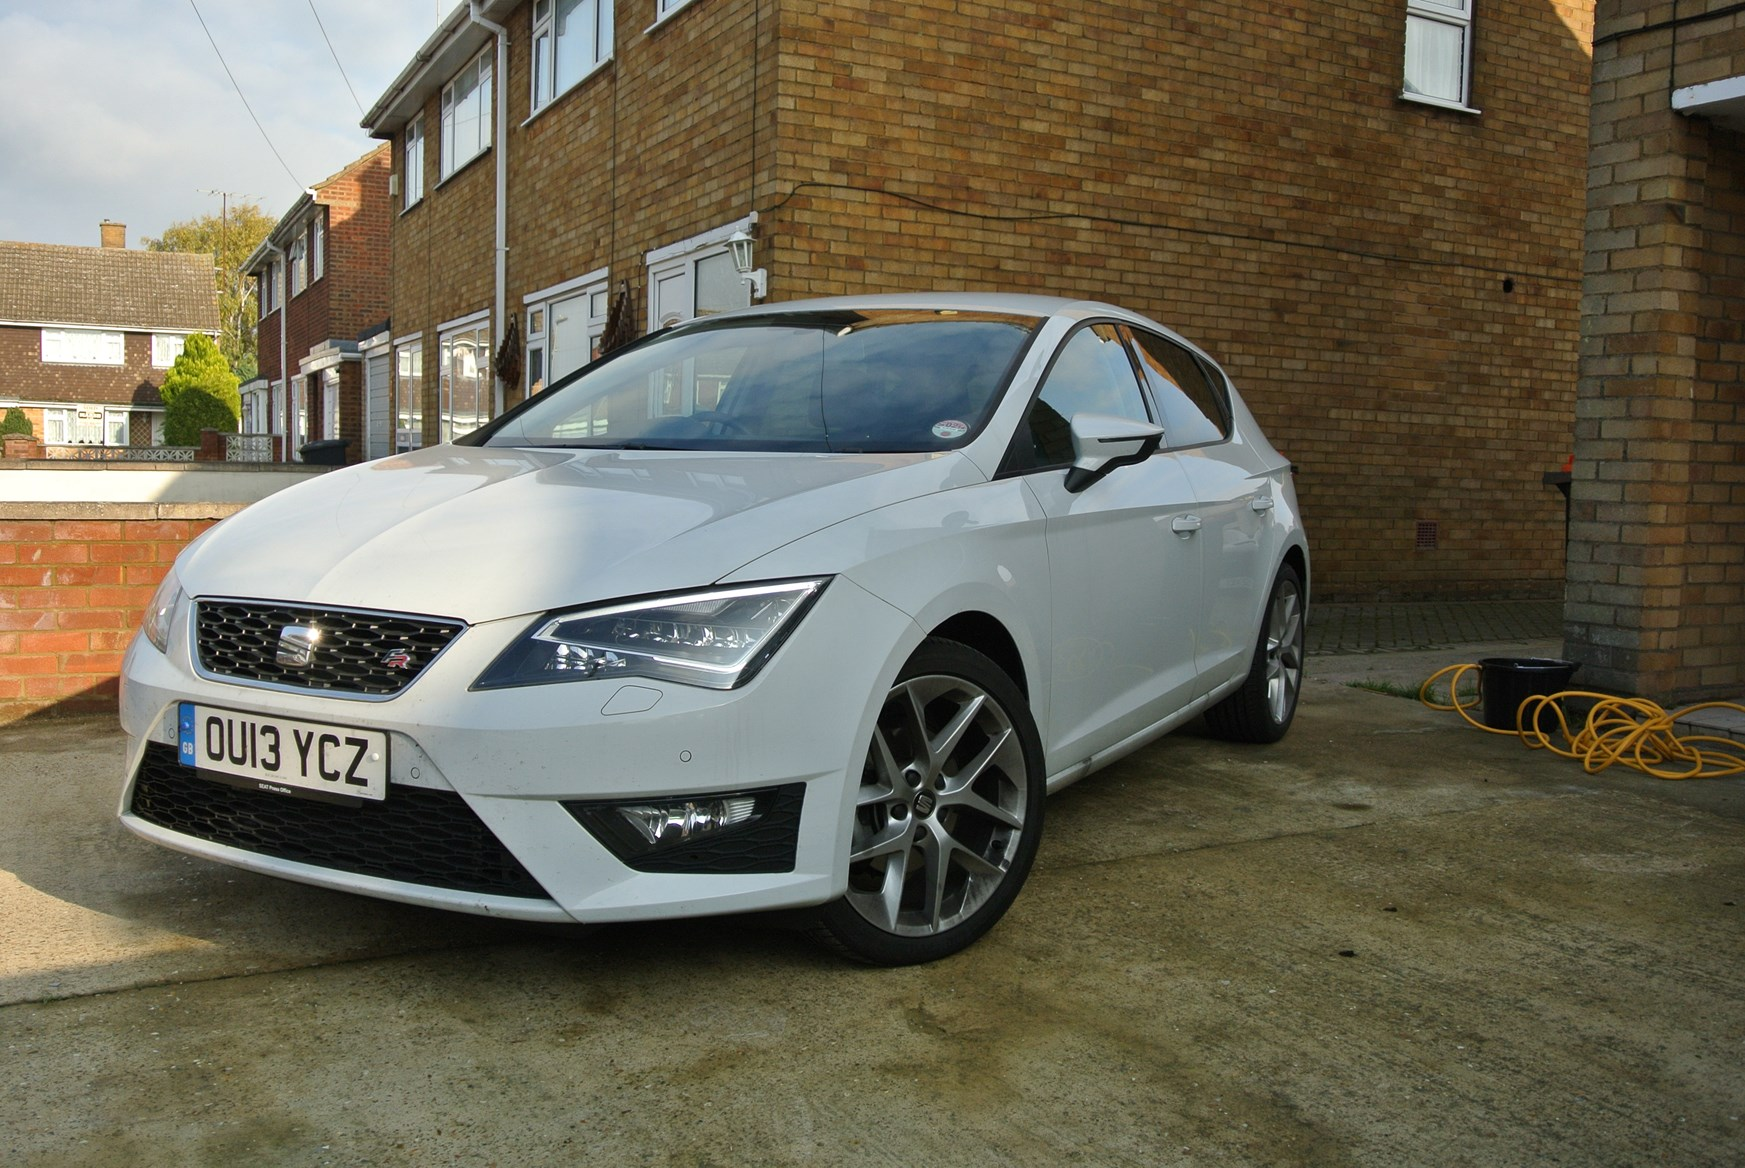 seat leon 2 0 tdi fr at the car wash parkers. Black Bedroom Furniture Sets. Home Design Ideas